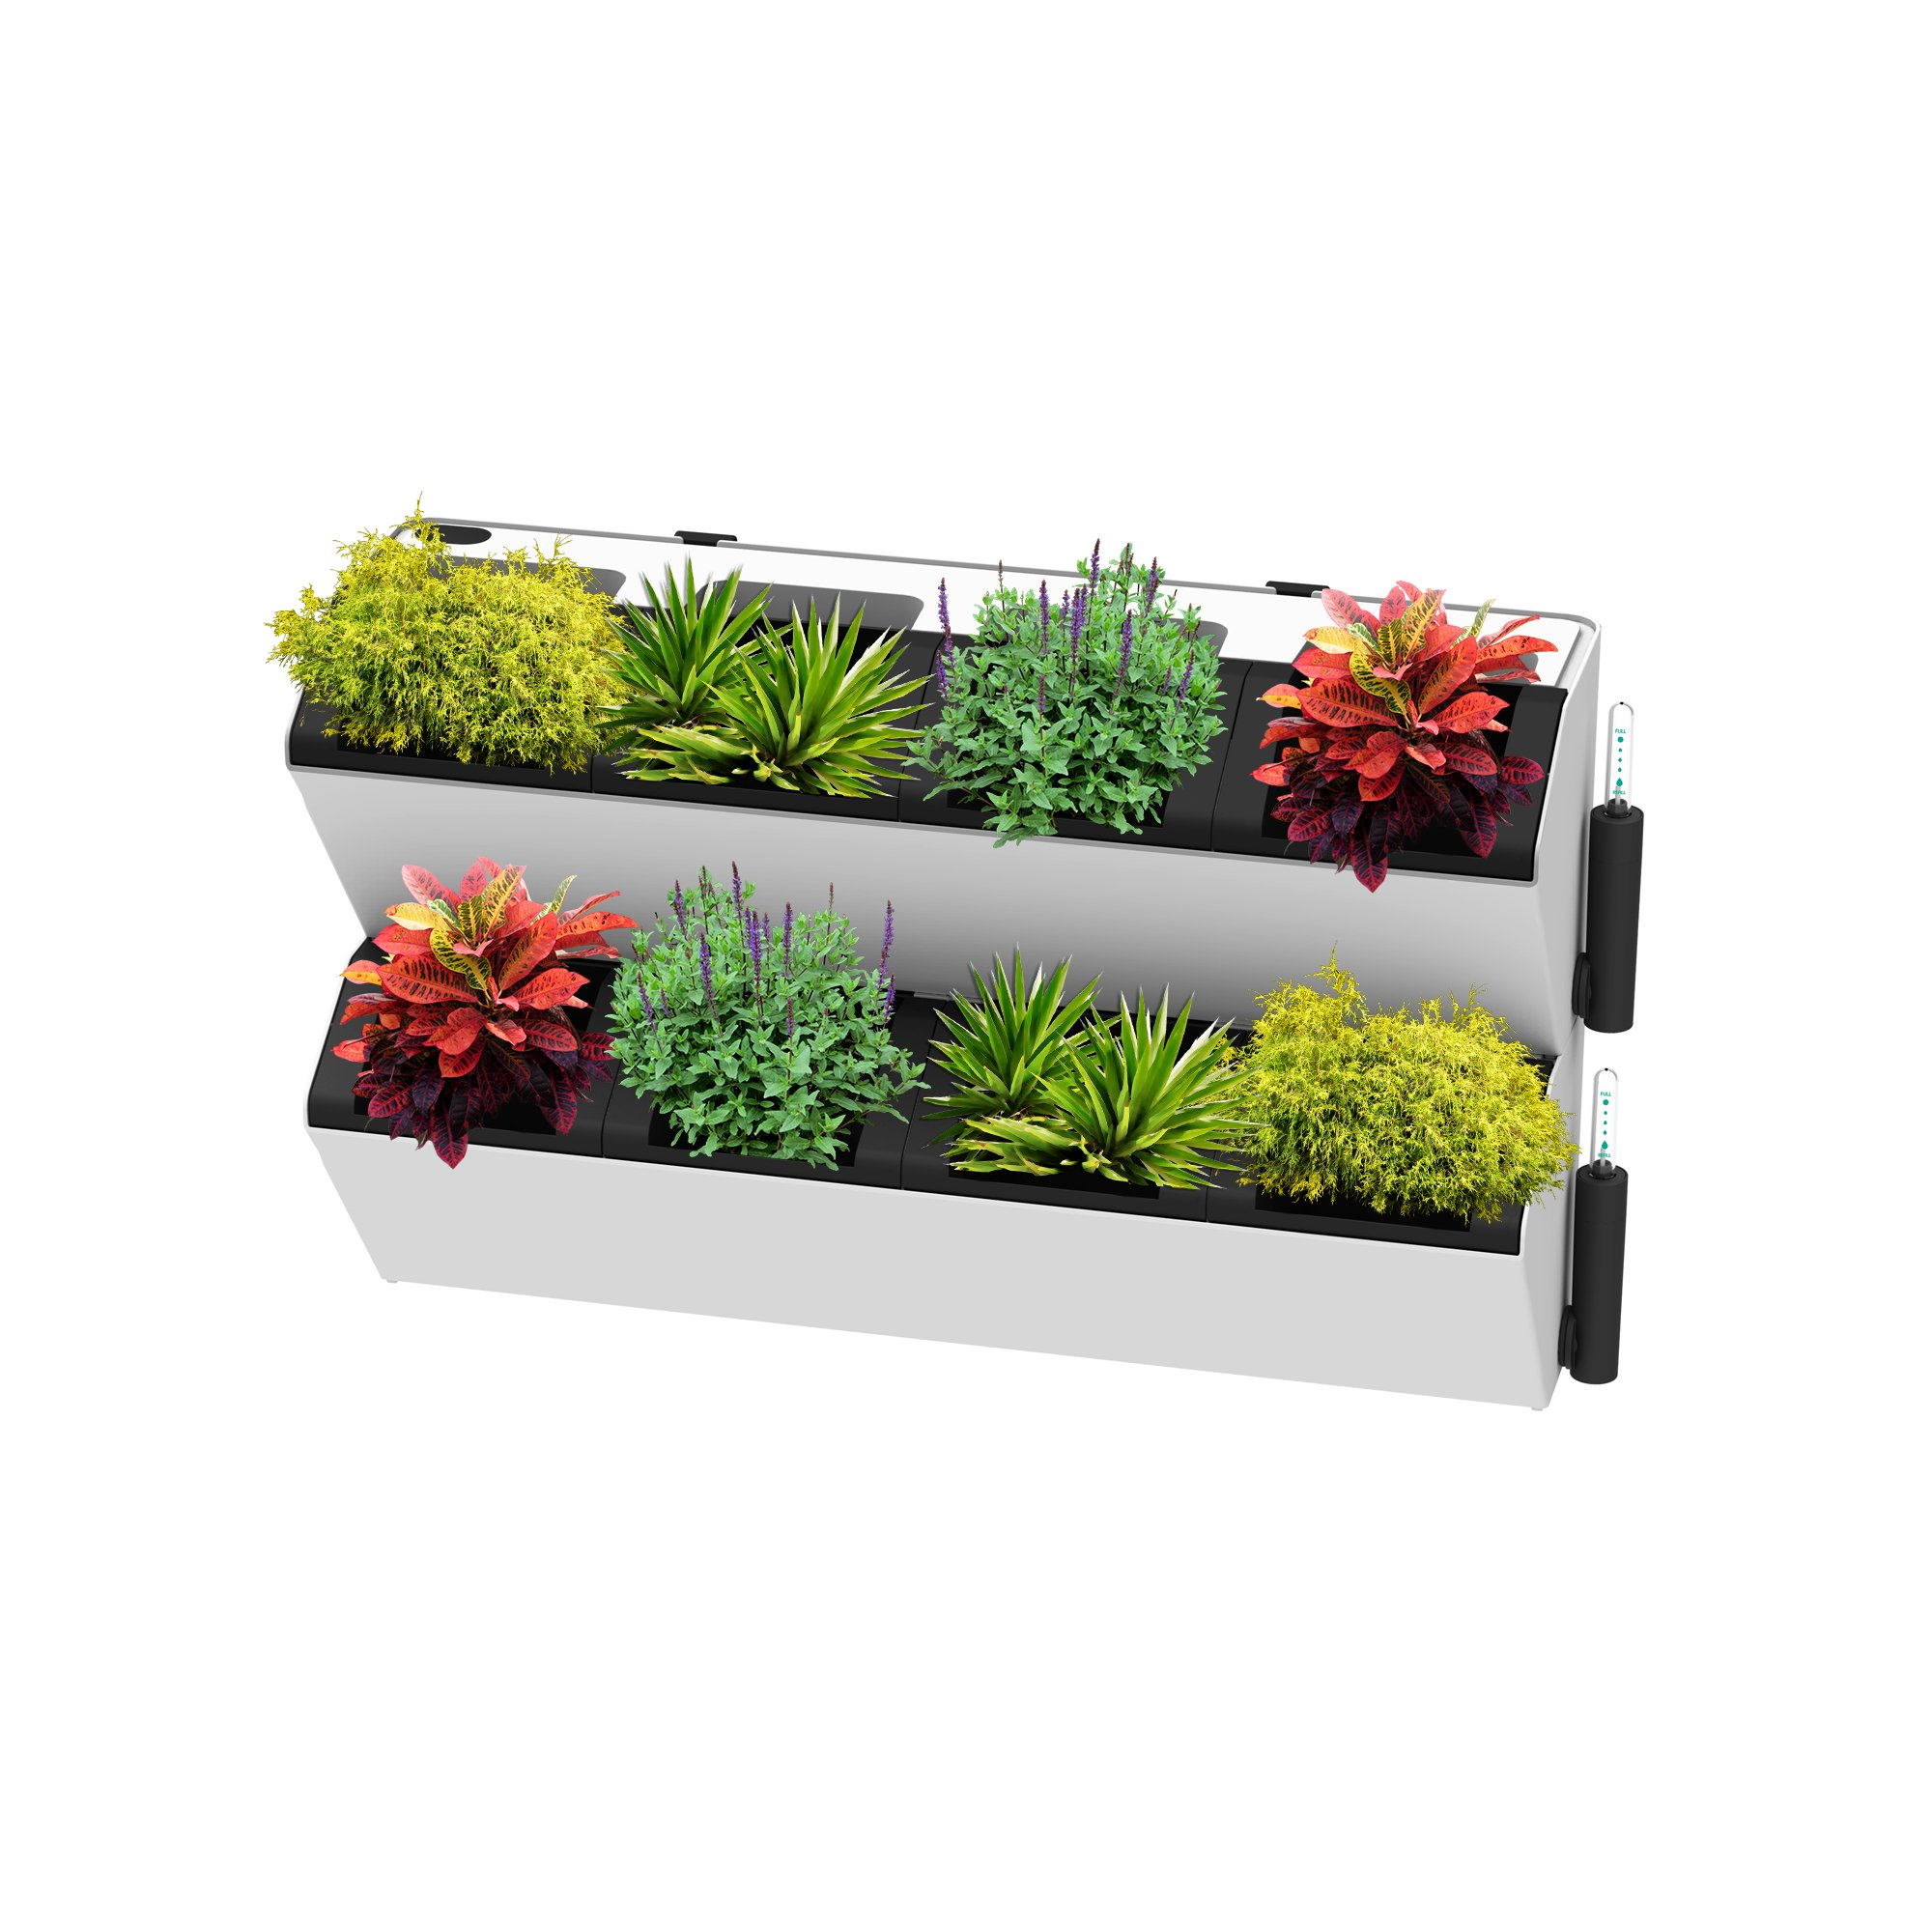 SavvyGrow BloomWall - Vertical Planter with Savvy Edge Technology - Self Watering with Hanging Bracket - Interior Exterior - Balcony Window Vegetable Gardens - Herb Growing Kit and Decors (2, Ivory)